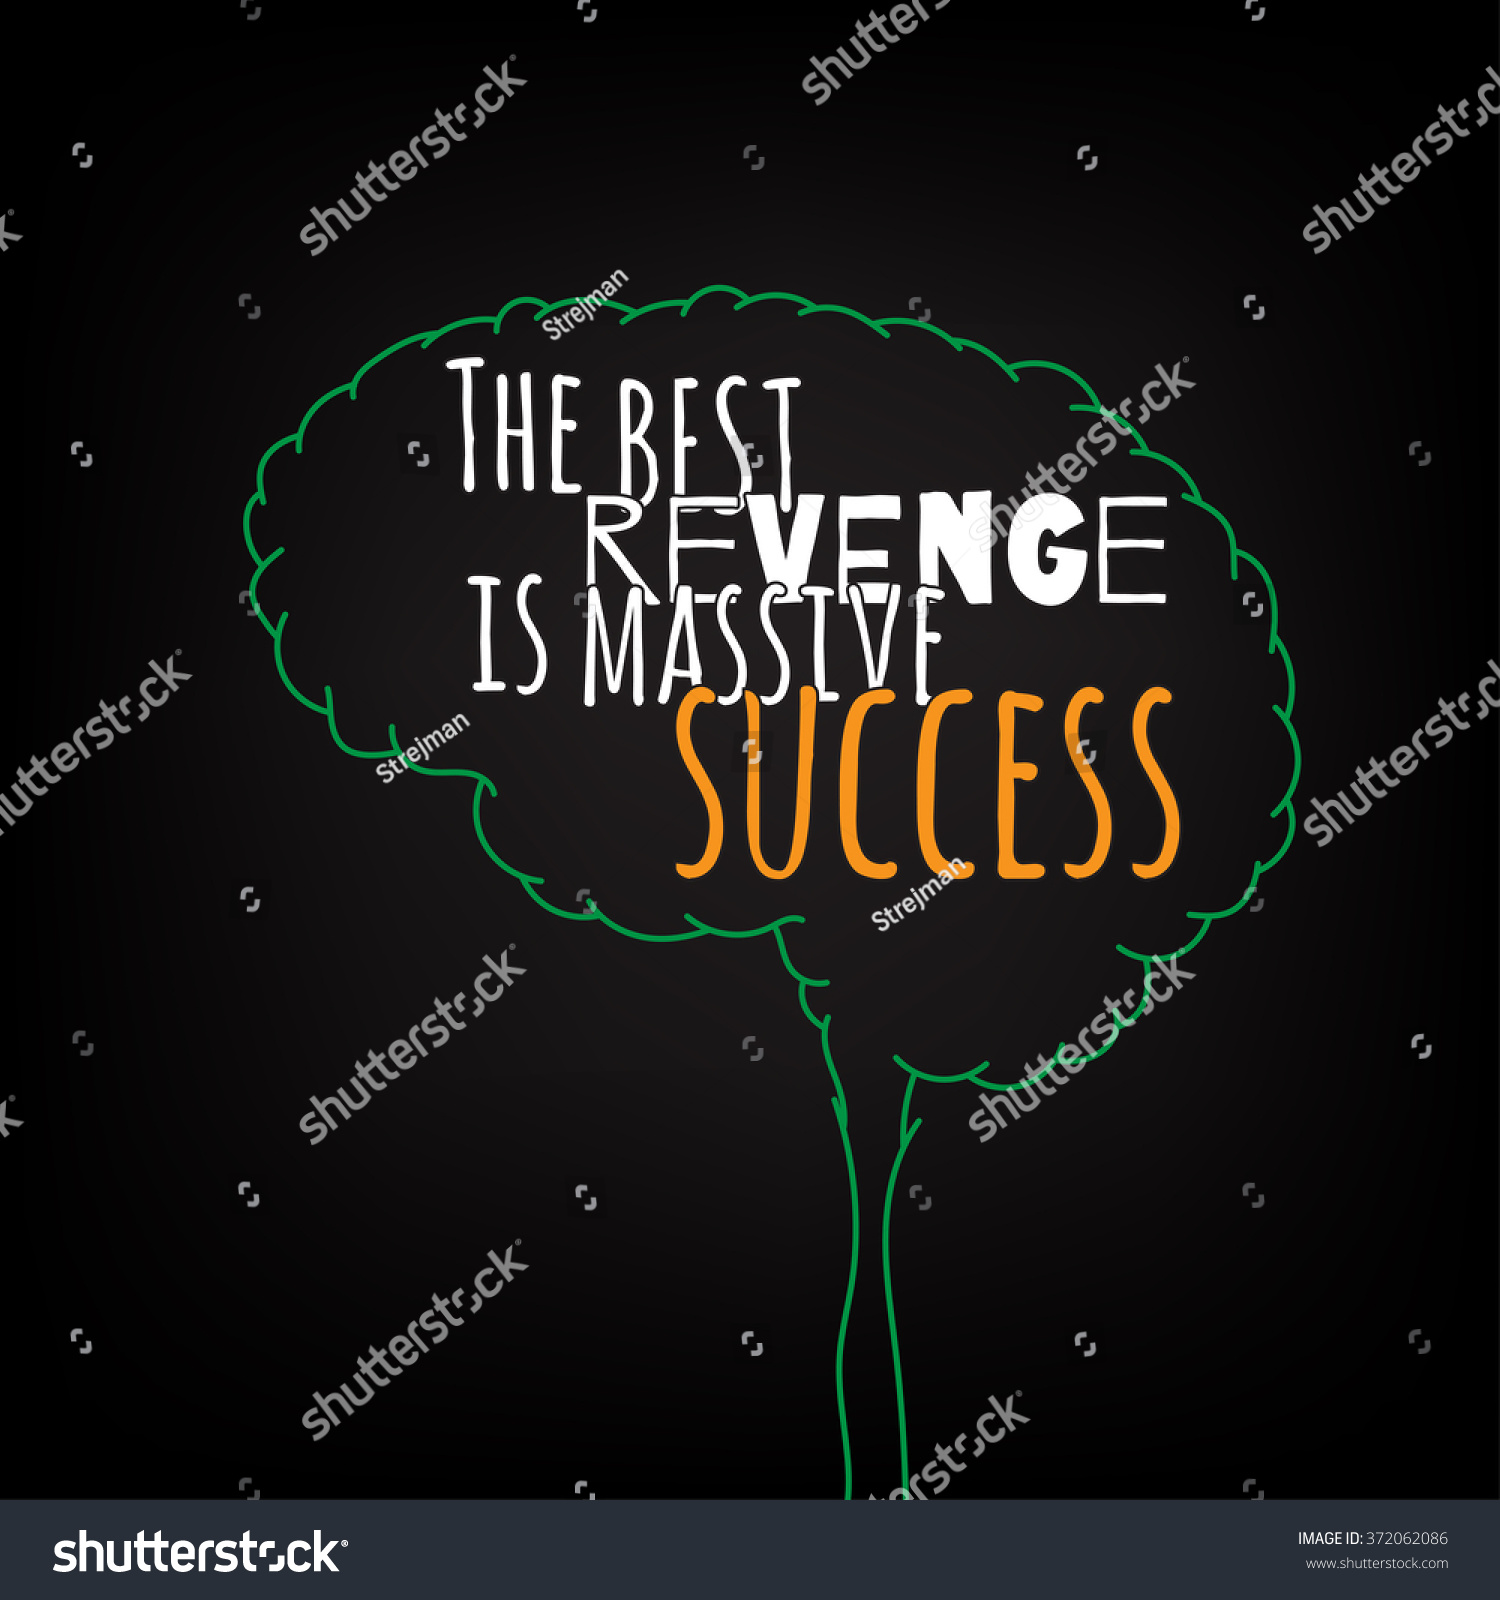 the best revenge is massive success motivation clever ideas in the brain poster text lettering